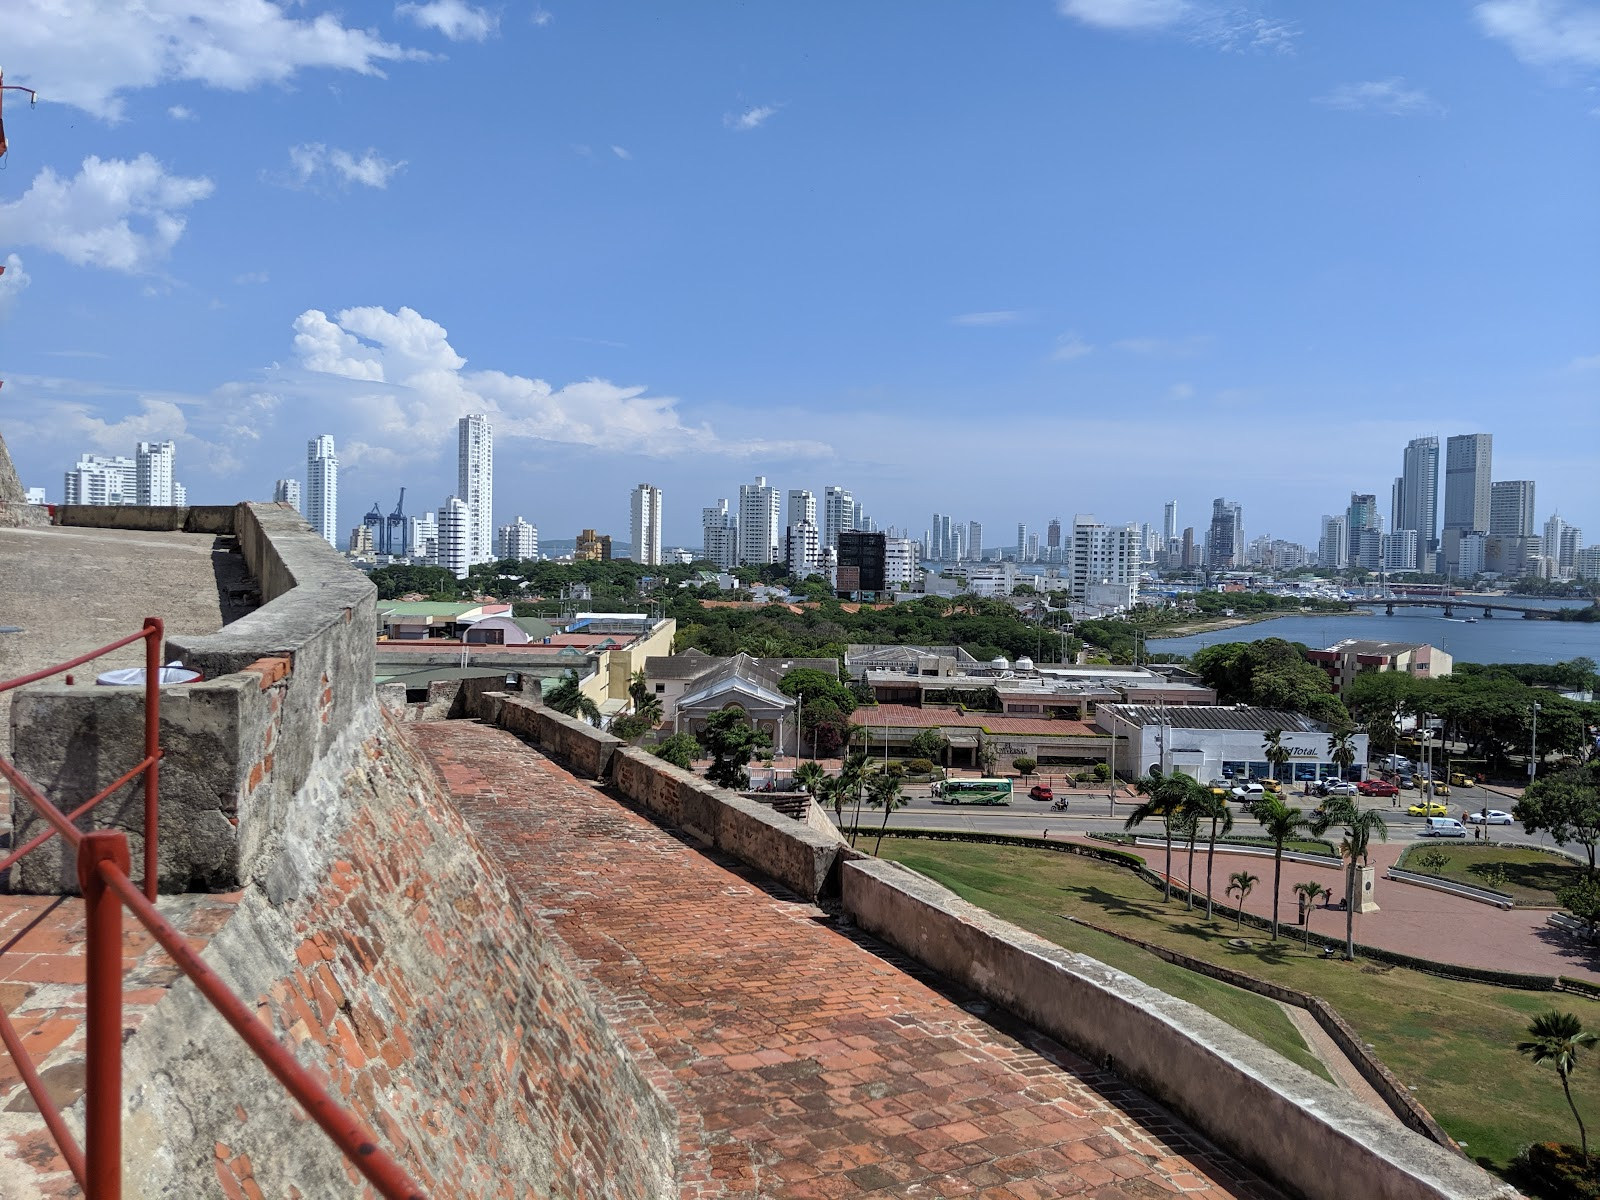 Castillo de San Felipe in Cartagena, Colombia.